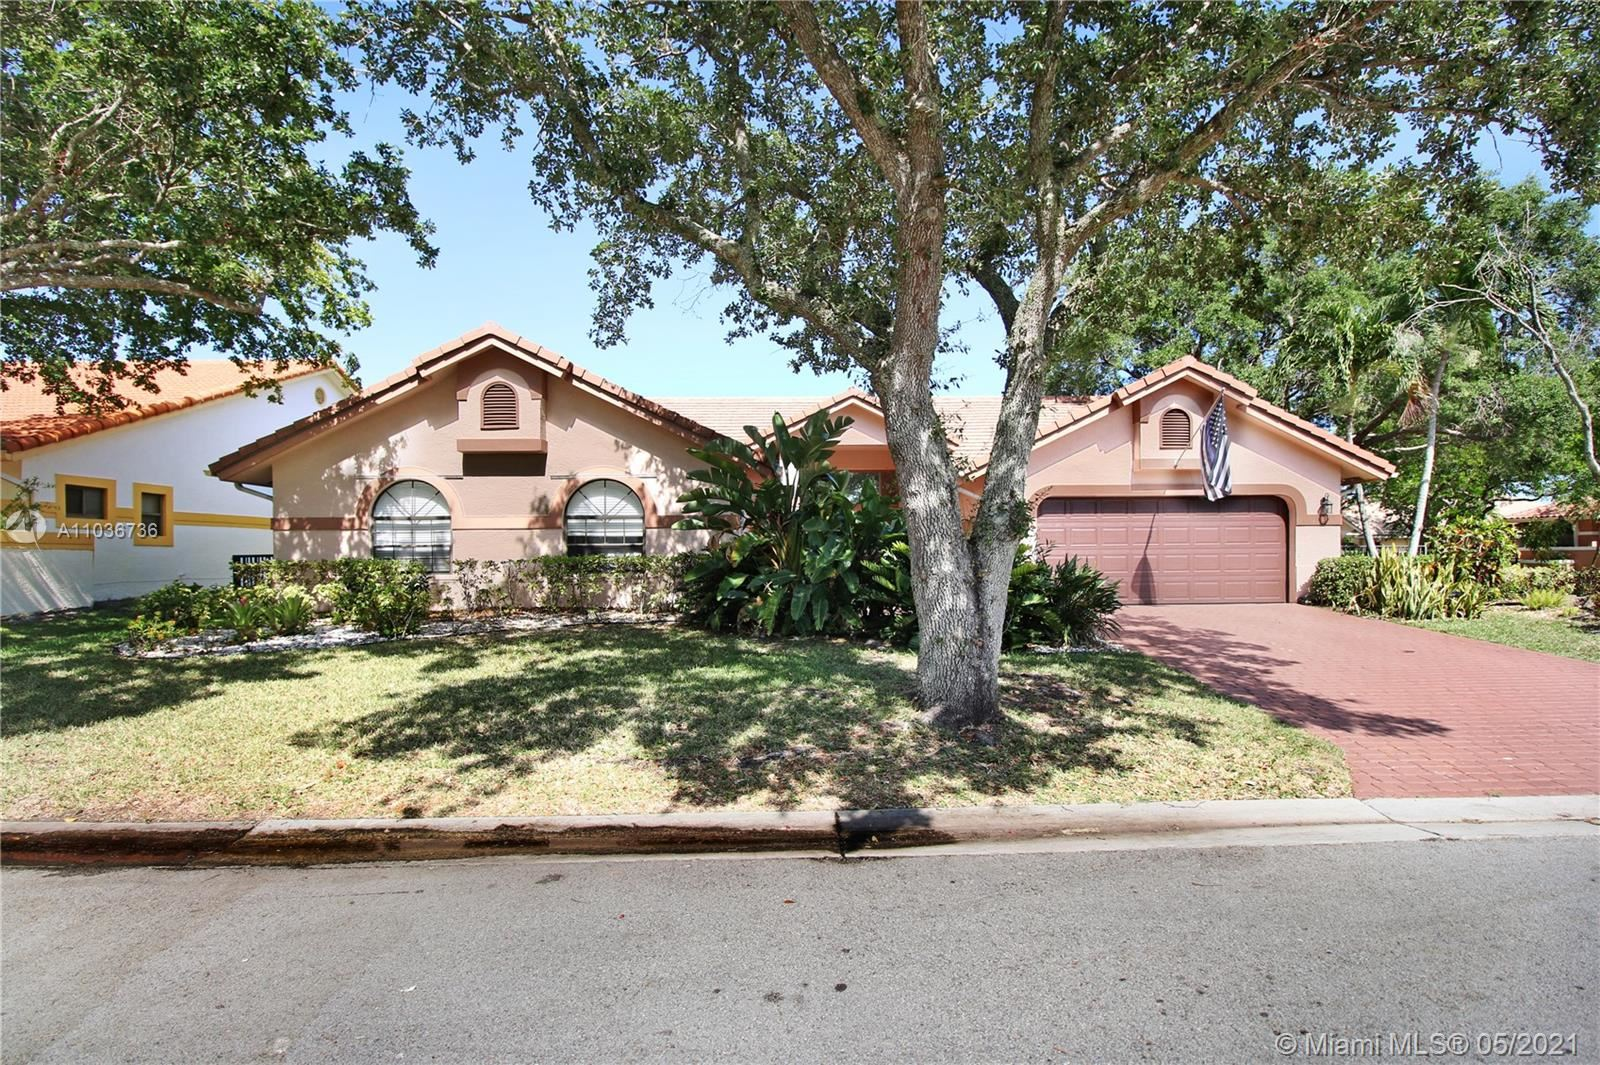 2107 Cherry Hills Way, Coral Springs, FL 33071 - #: A11036736